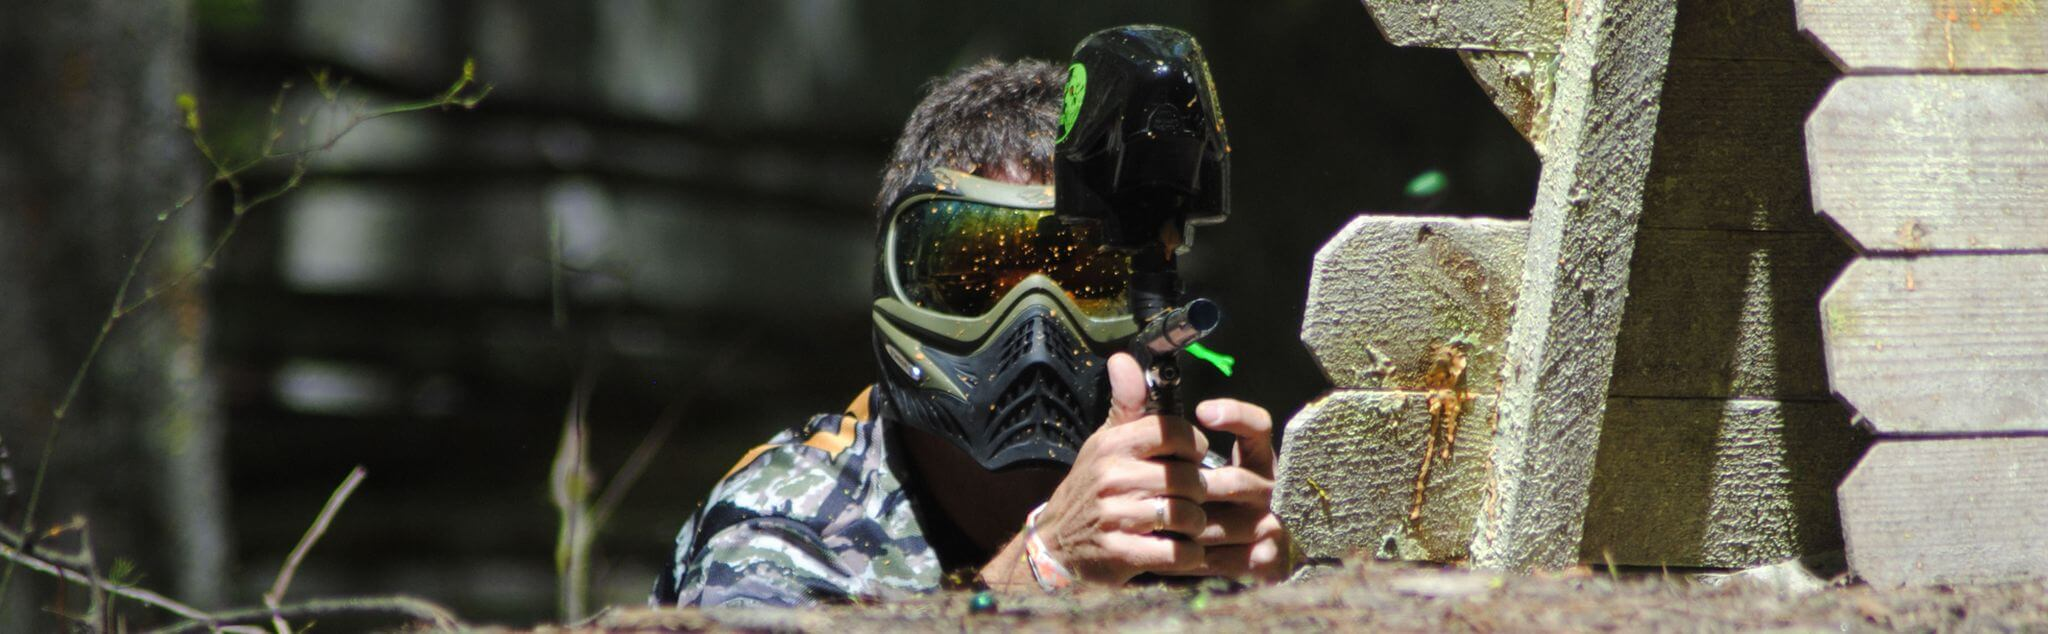 Paintball a Ascoli Piceno